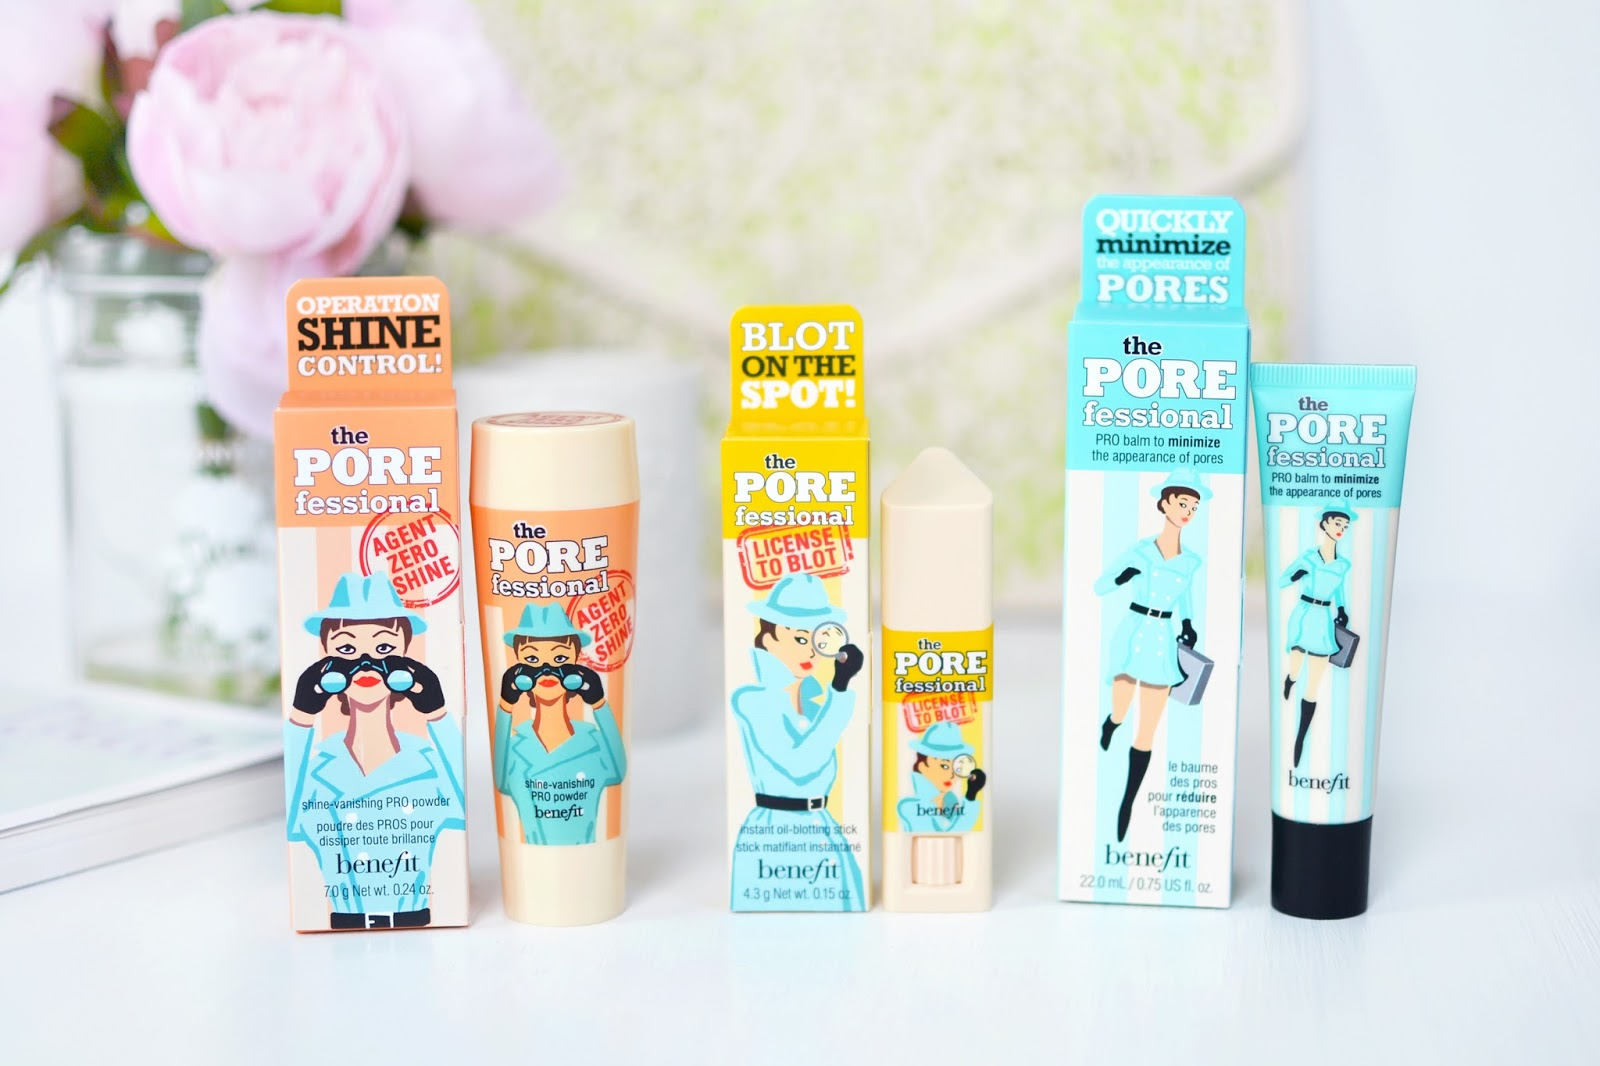 porefessional products from benefit